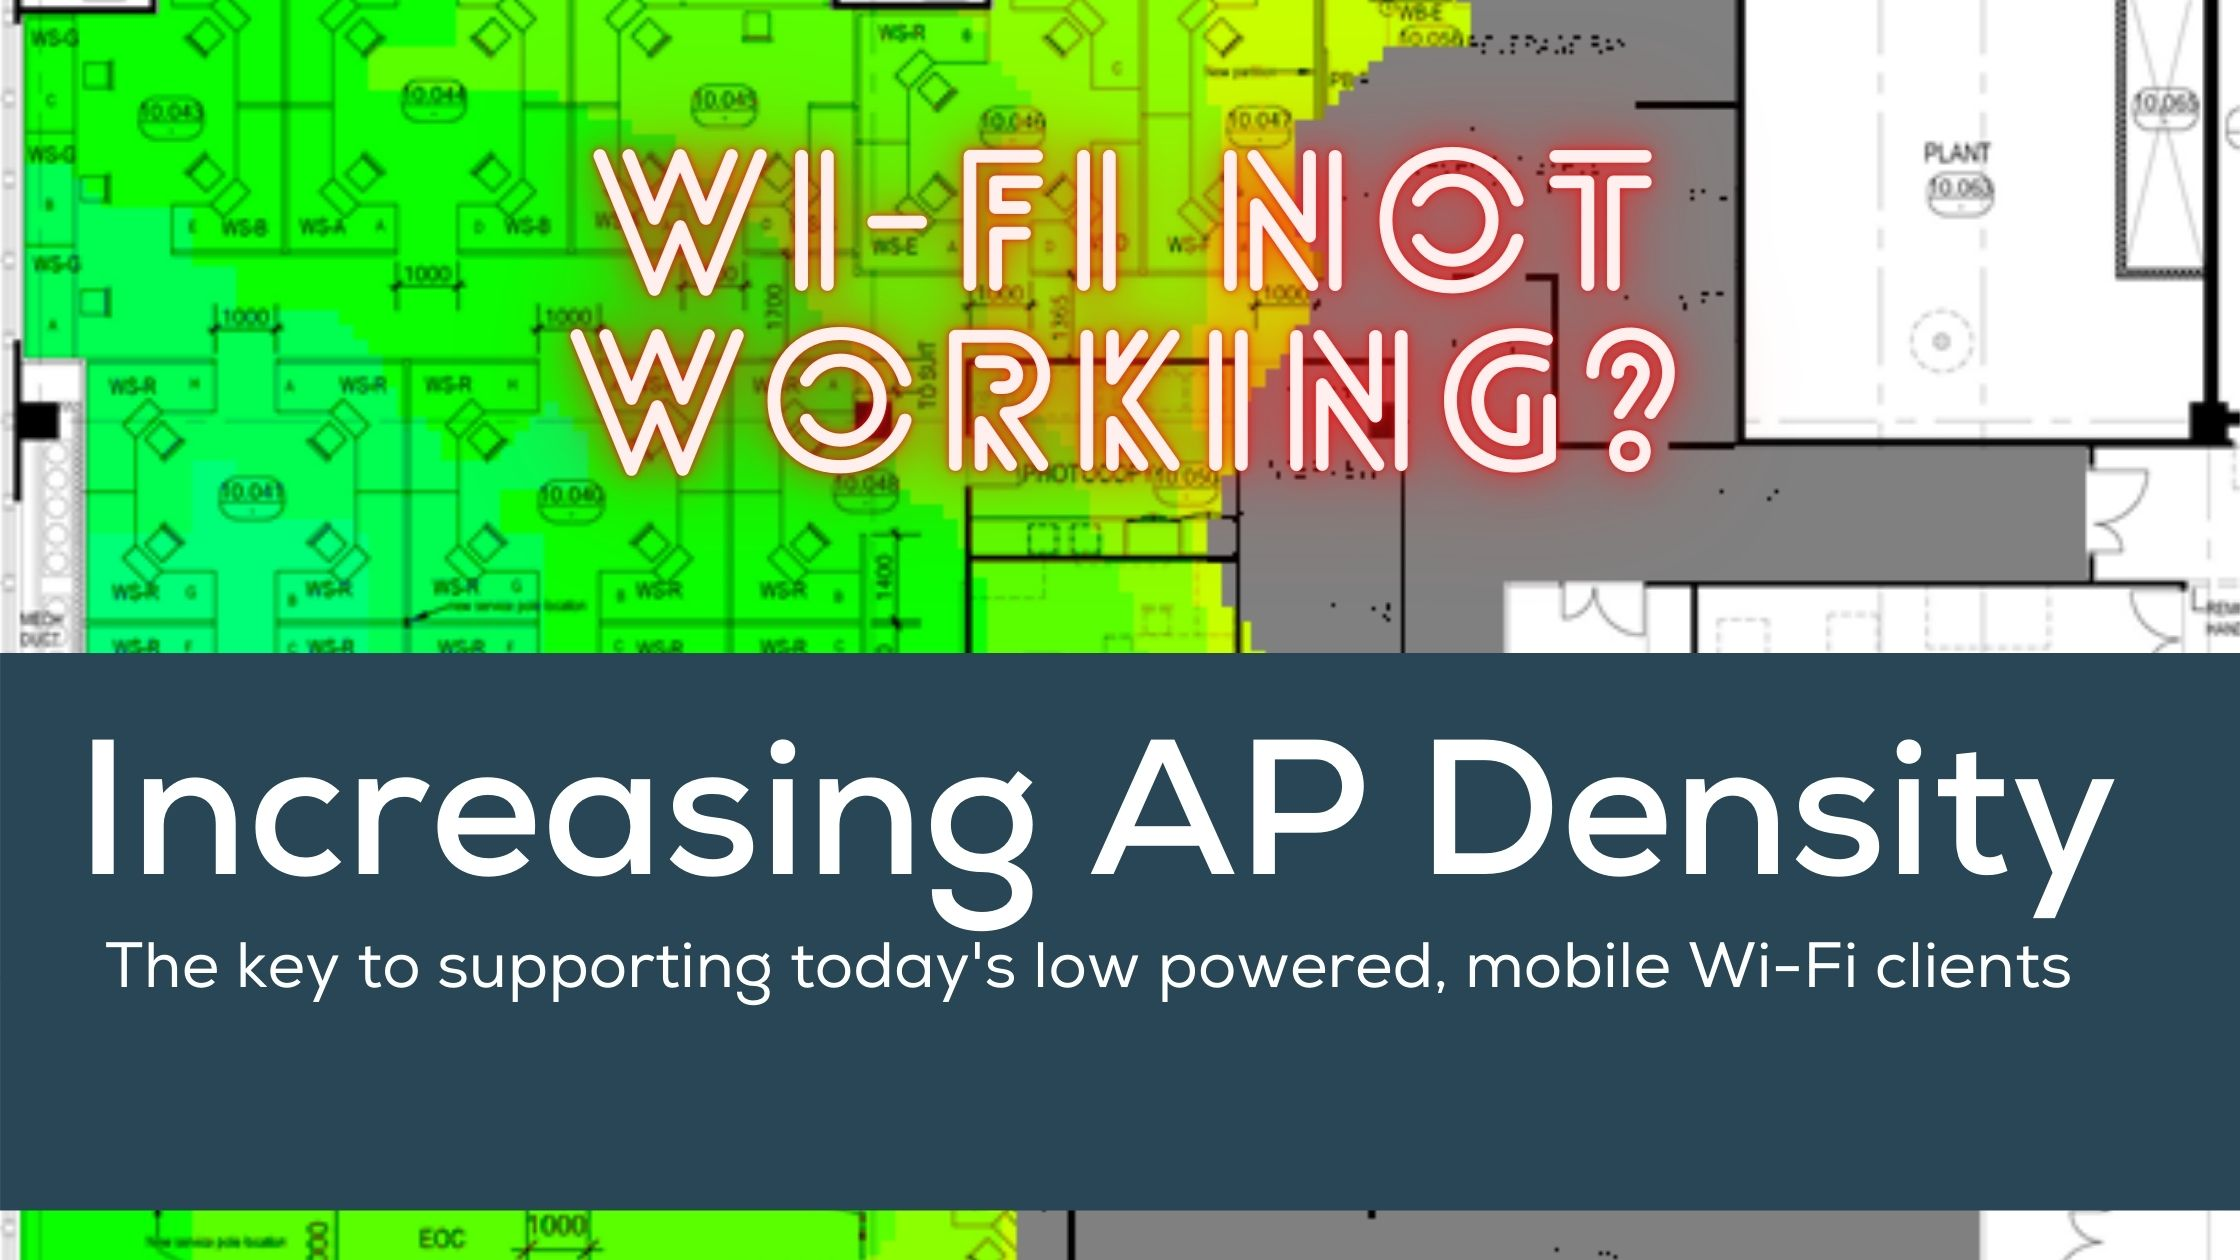 Increasing AP Density